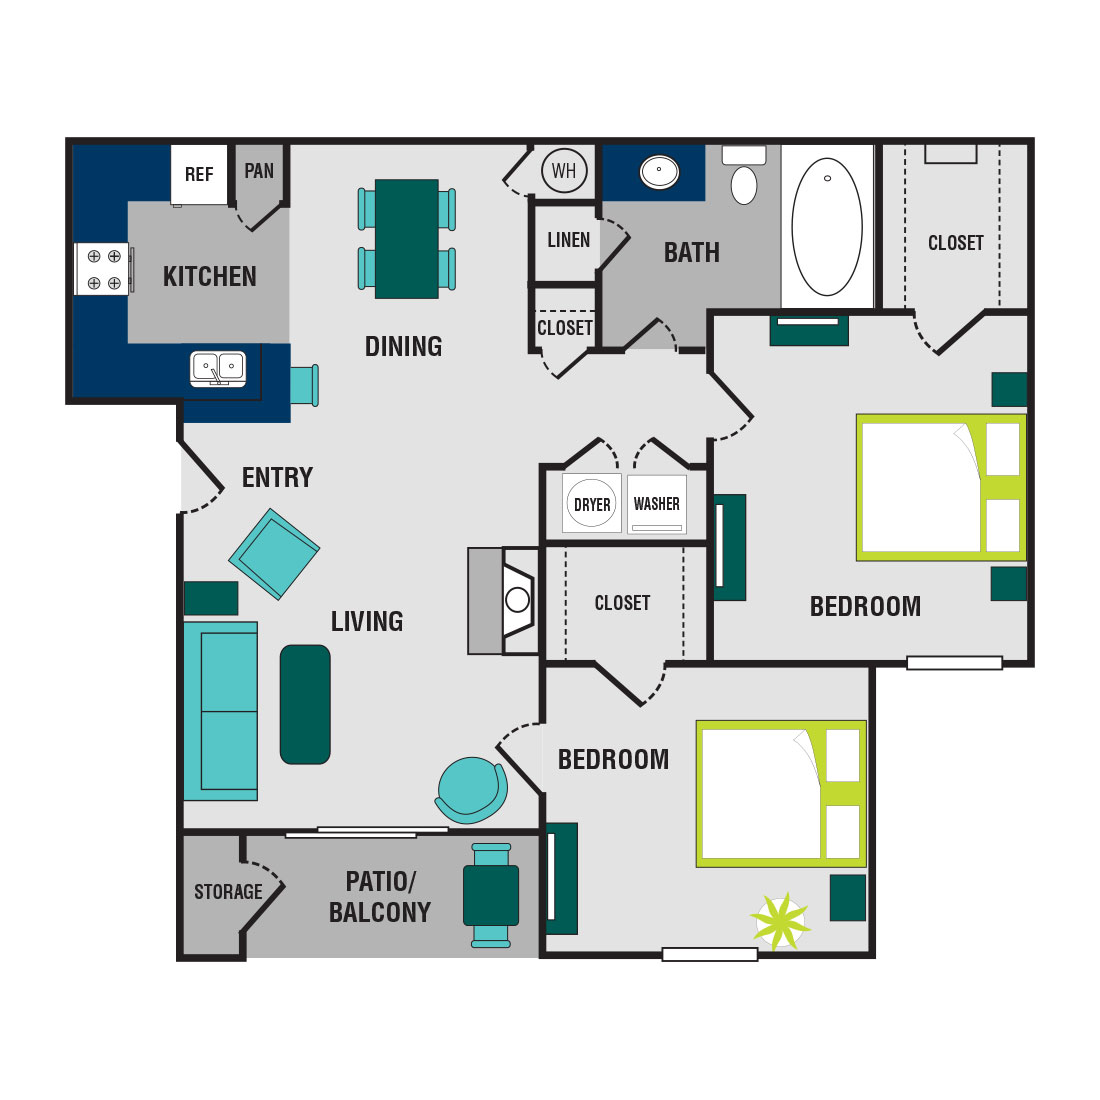 Floorplan - Upgraded 2 Bed/1 Bath image